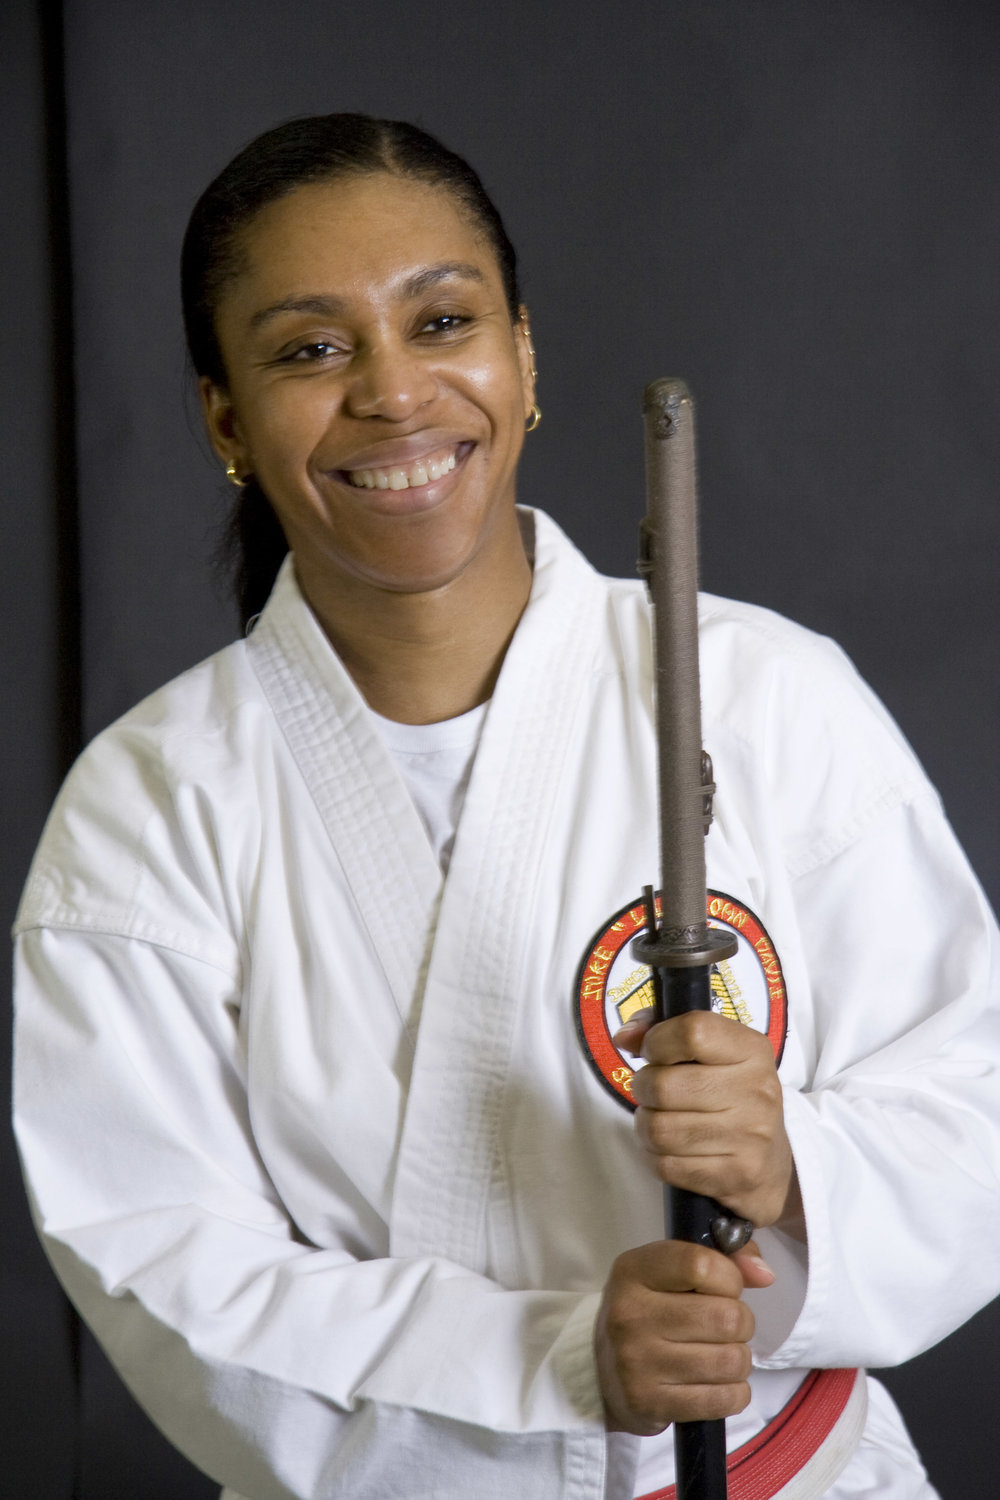 Chungsanim Master Dominick Brioche  is a native of Haiti, and a three time Black Belt Hall of Fame inductee,. She holds a 6th degree Black Belt in Jujitsu, a 4th degree in HapKiDo, and a 4th degree in TaeKwonDo. Dominick is the first and only female Shihan in Kumite Ryu Jujitsu under Soke Lil John Davis. Certified as International Instructor in HapKiDo, Dominick has hosted seminars in New York City, Delaware, Washington DC, Haiti and the Dominican Republic. In her constant pursuit of excellence, ChungSaNim is furthering her formal education in Philosophy at the Doctorate level.